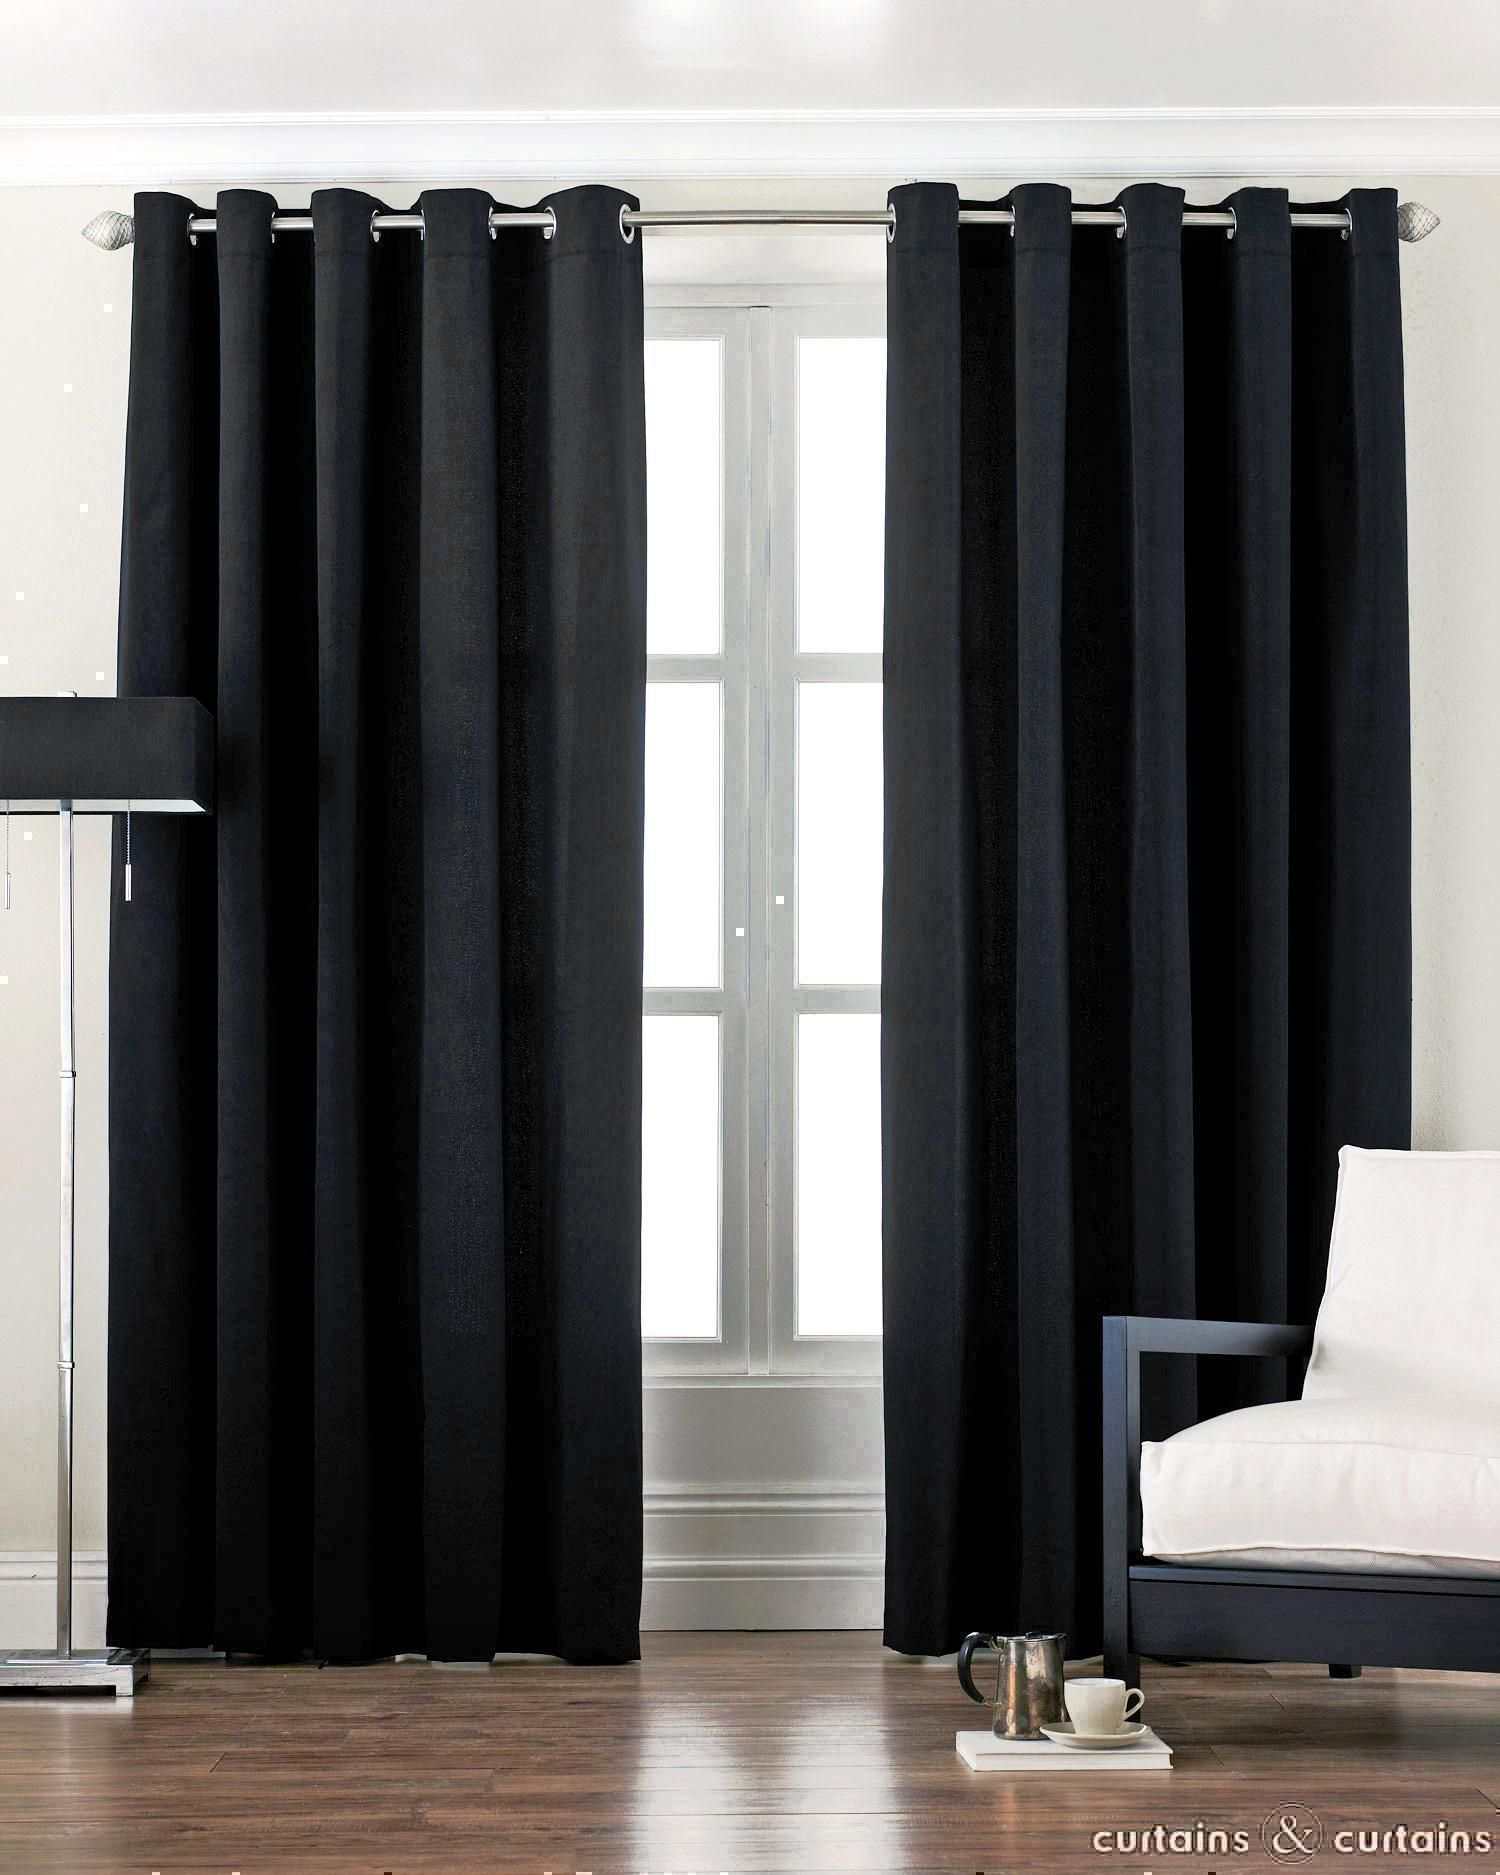 Home Office Decorating Ideas: Black Bedroom Curtains